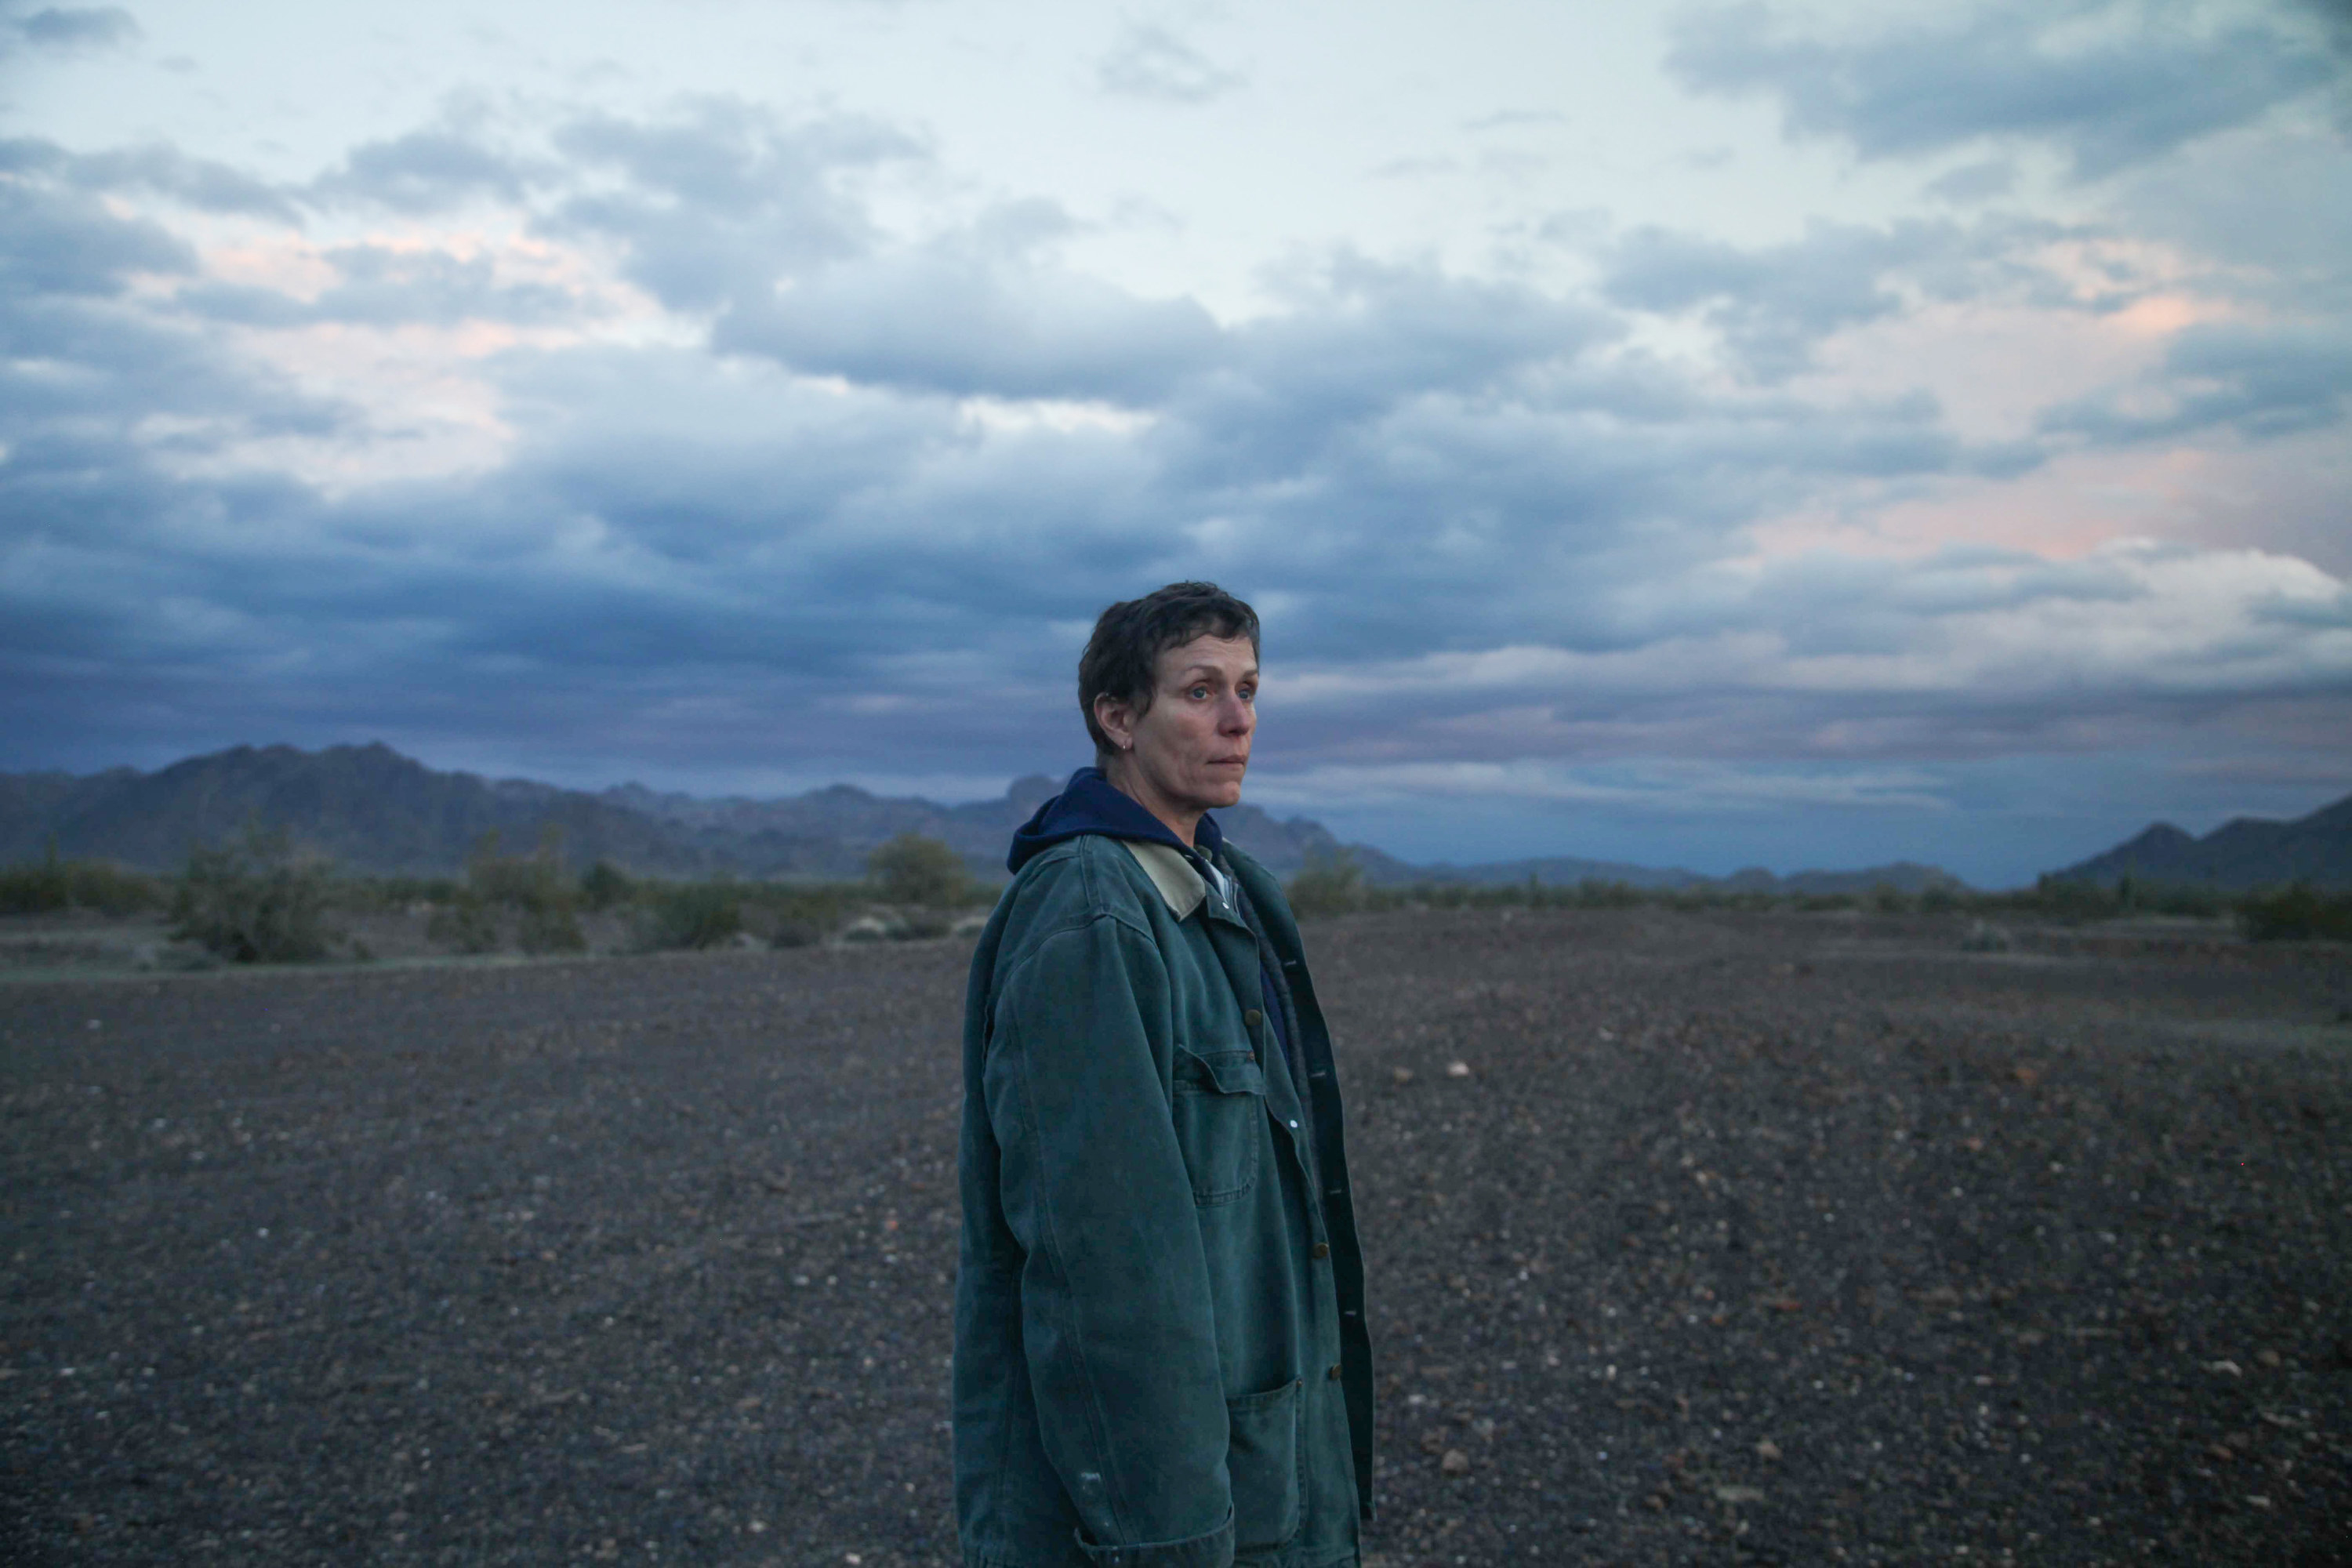 Frances McDormand looking out into the distance